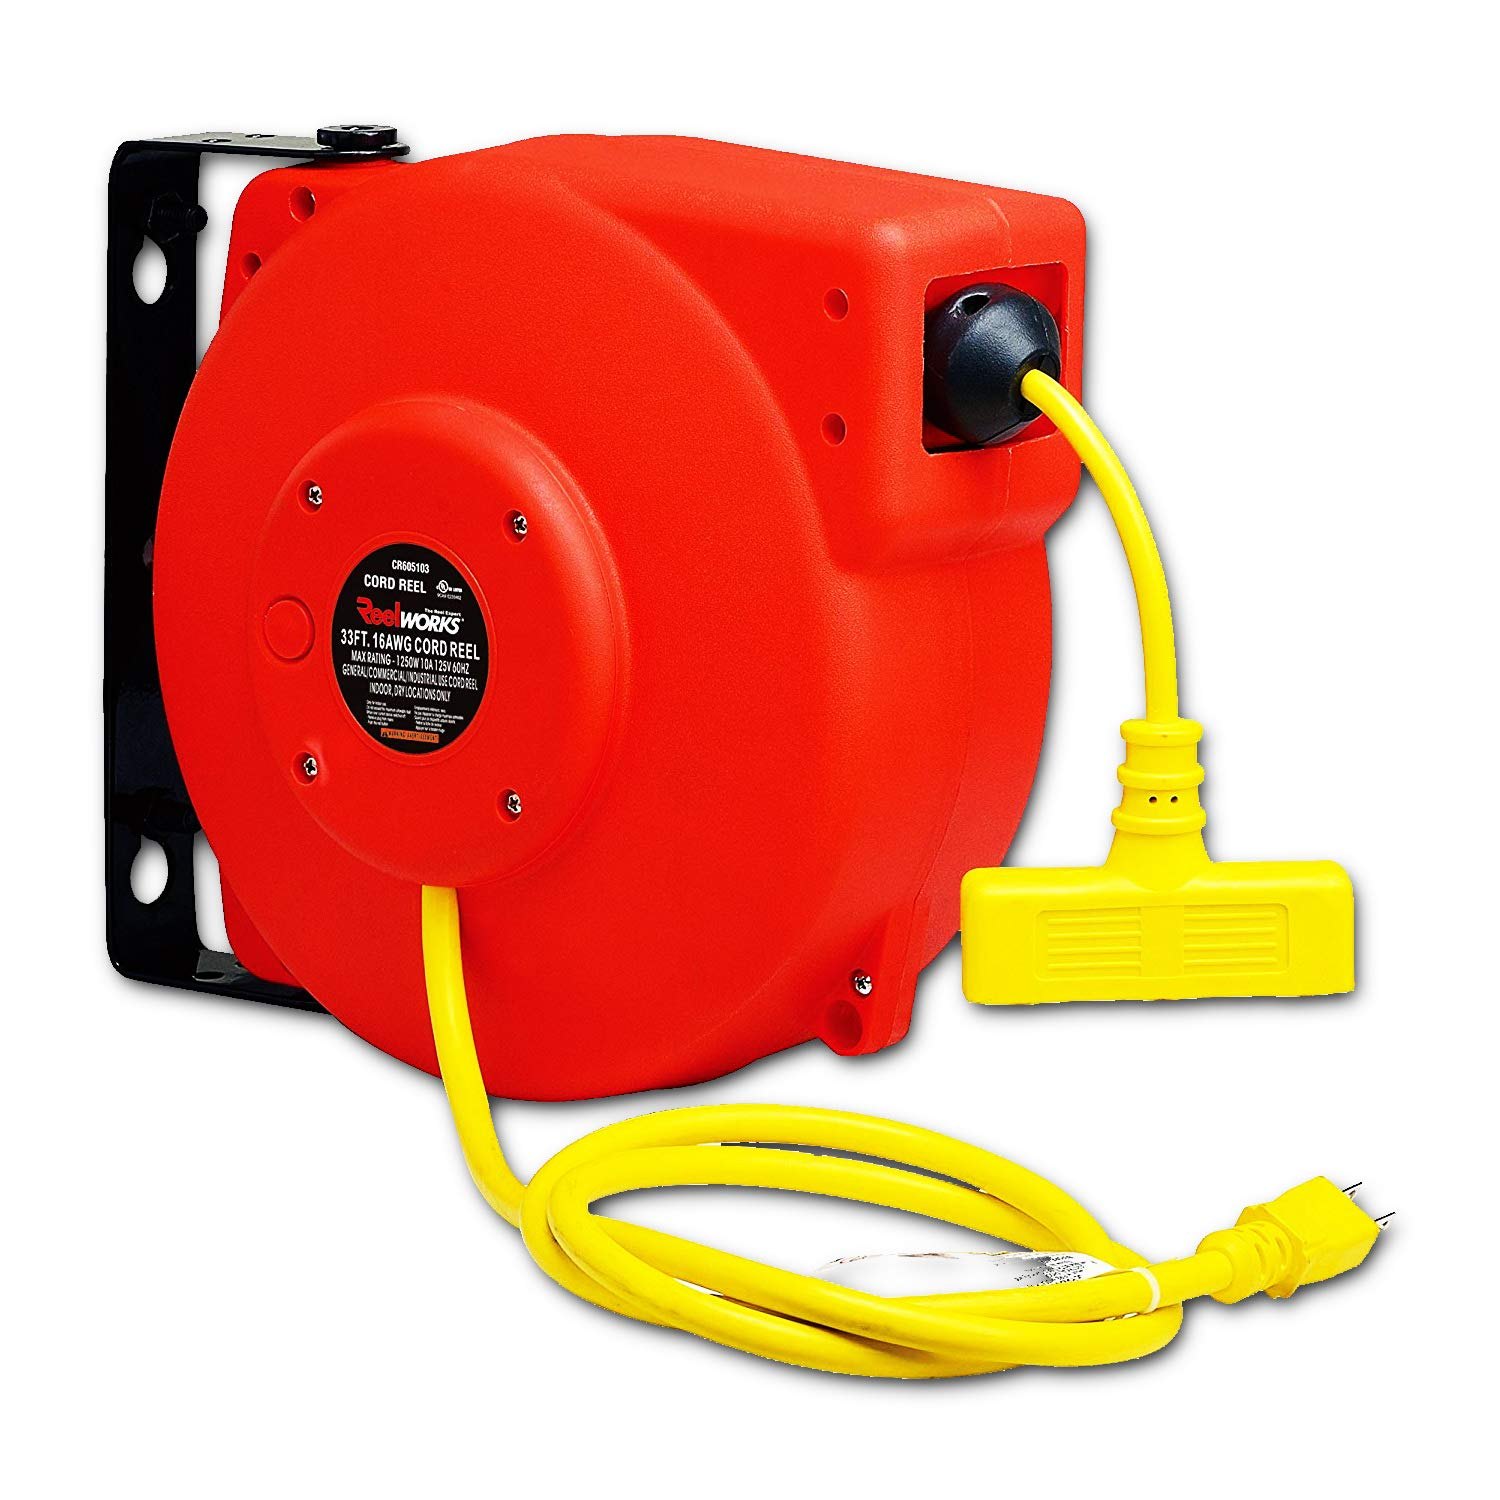 Sale special price REELWORKS Heavy Duty Extension Cord Reel T SJT Triple 3C Max 74% OFF 16AWG